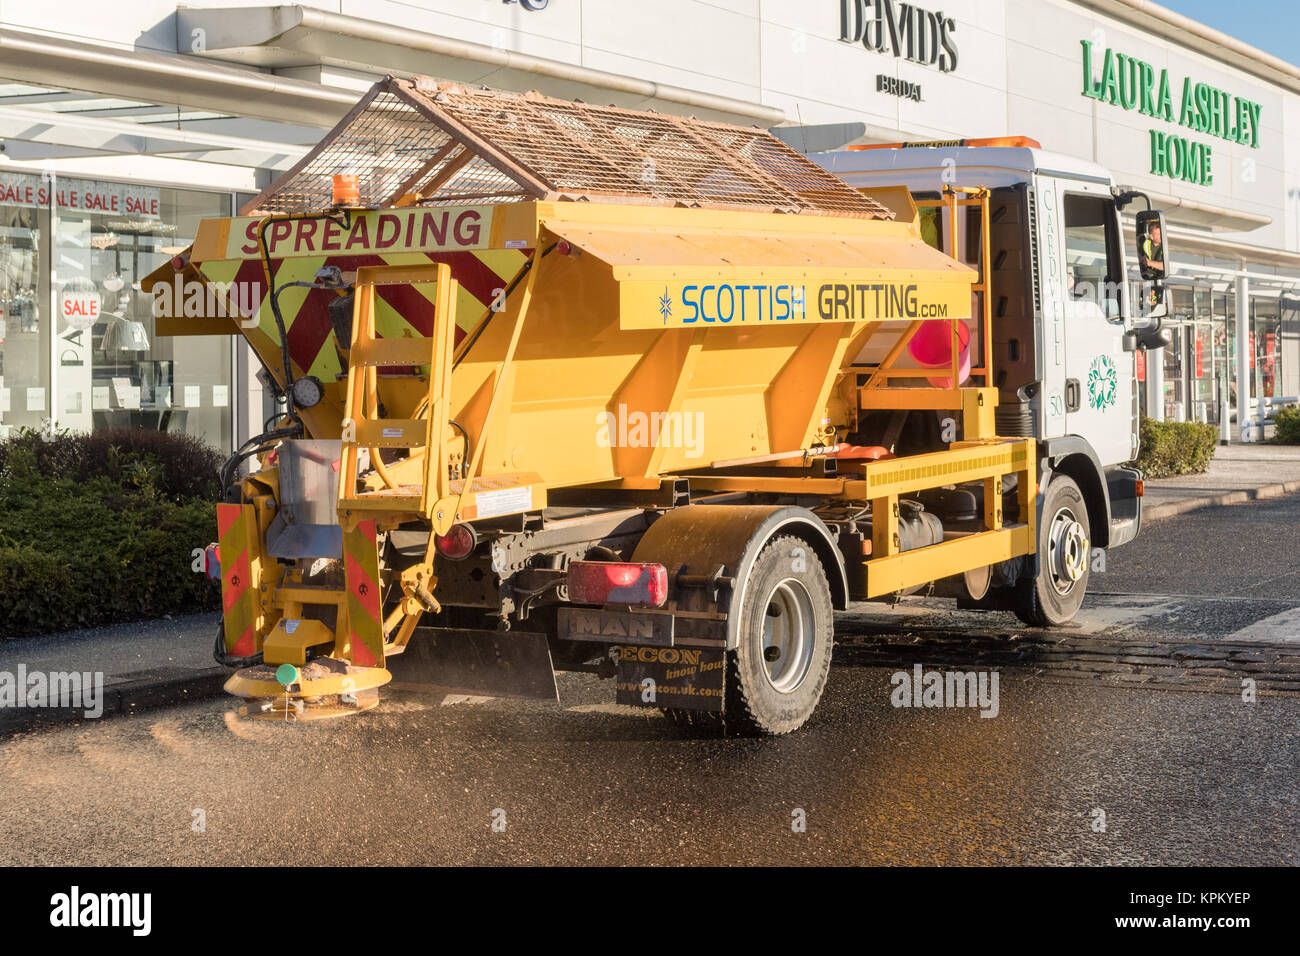 Scottish Gritting private gritting lorry spreading at Breahead shopping centre, Glasgow, Scotland, UK - Stock Image